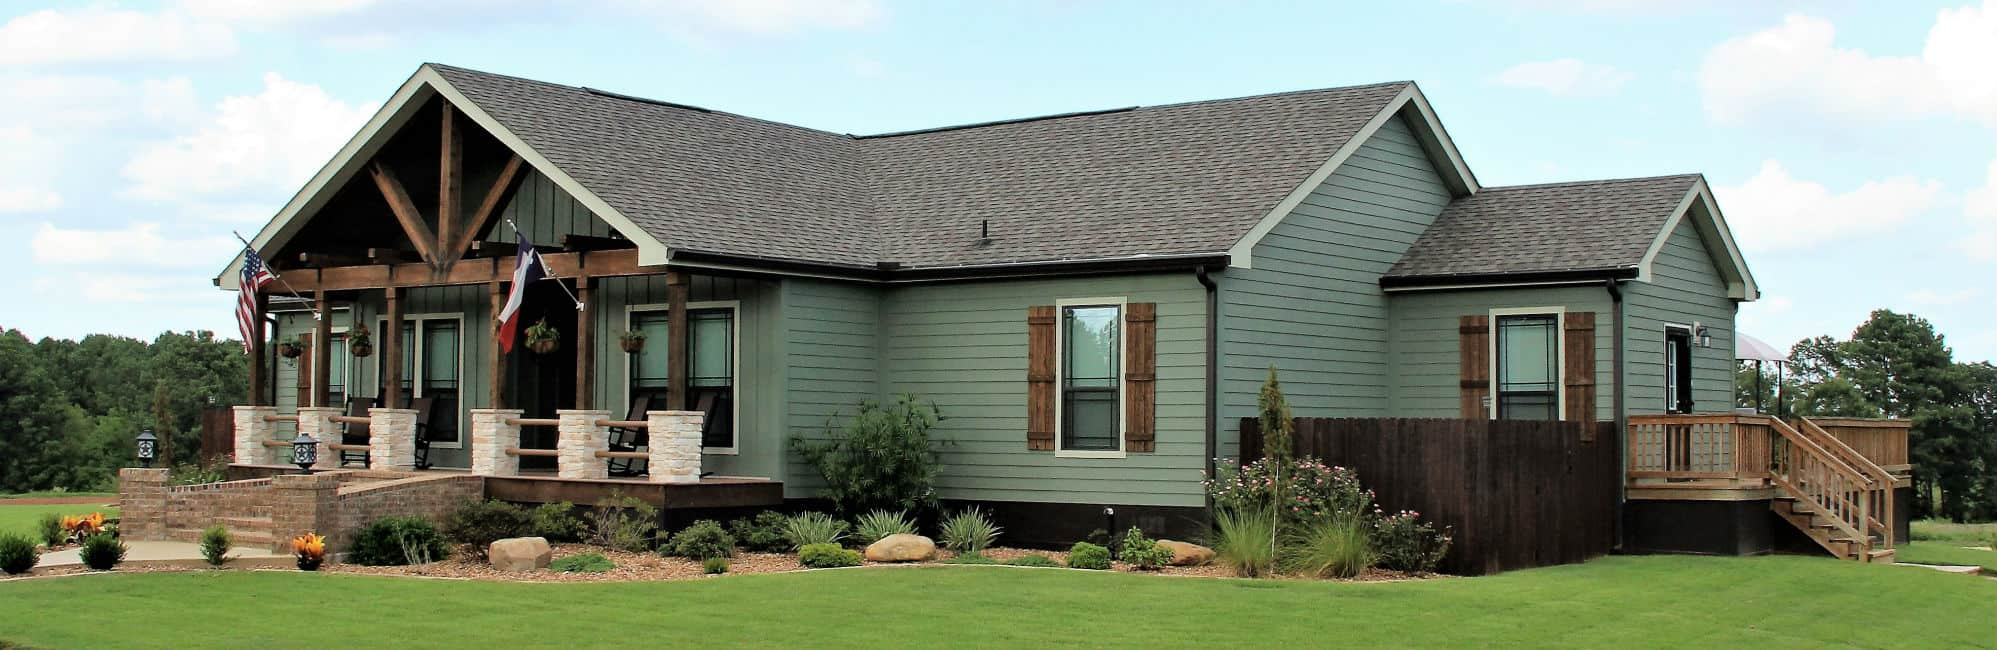 Pratt Modular Homes | Modular Homes Texas And Tiny Houses Texas